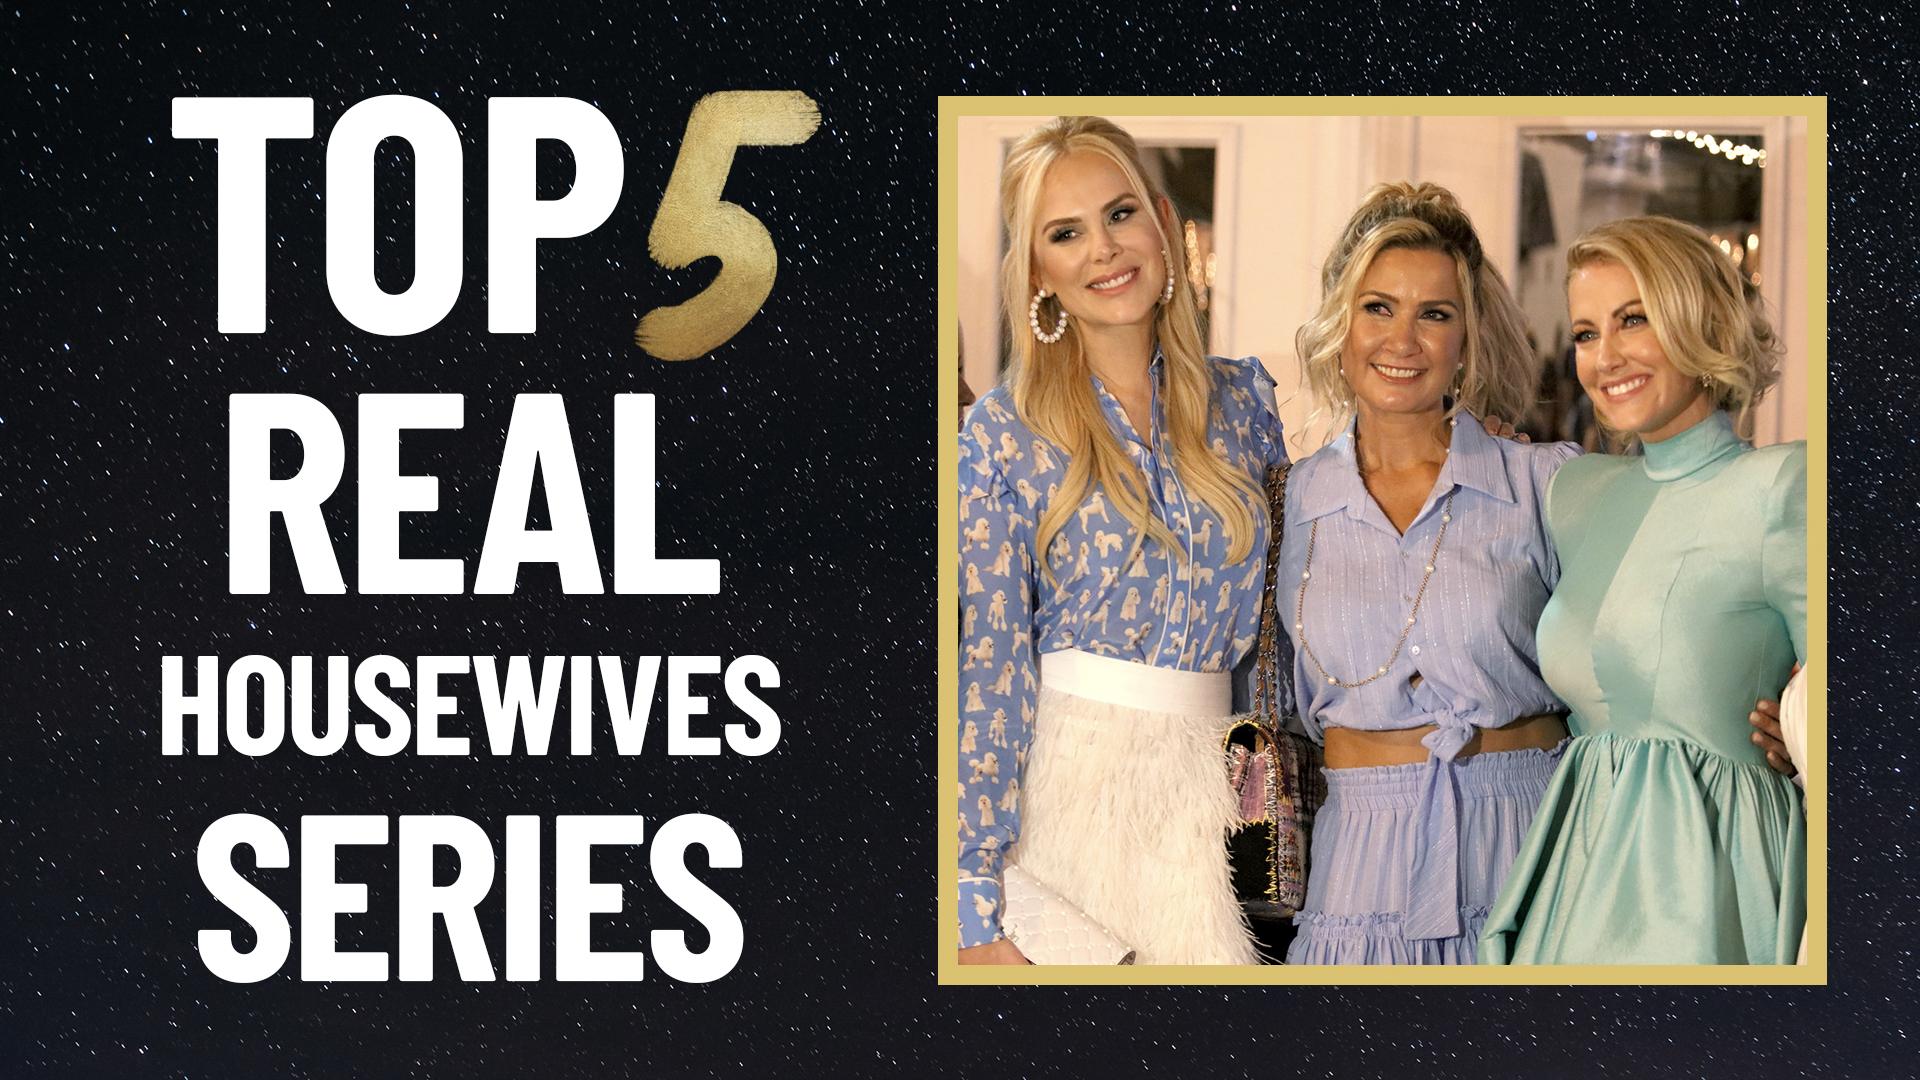 Top 5 Real Housewives Series